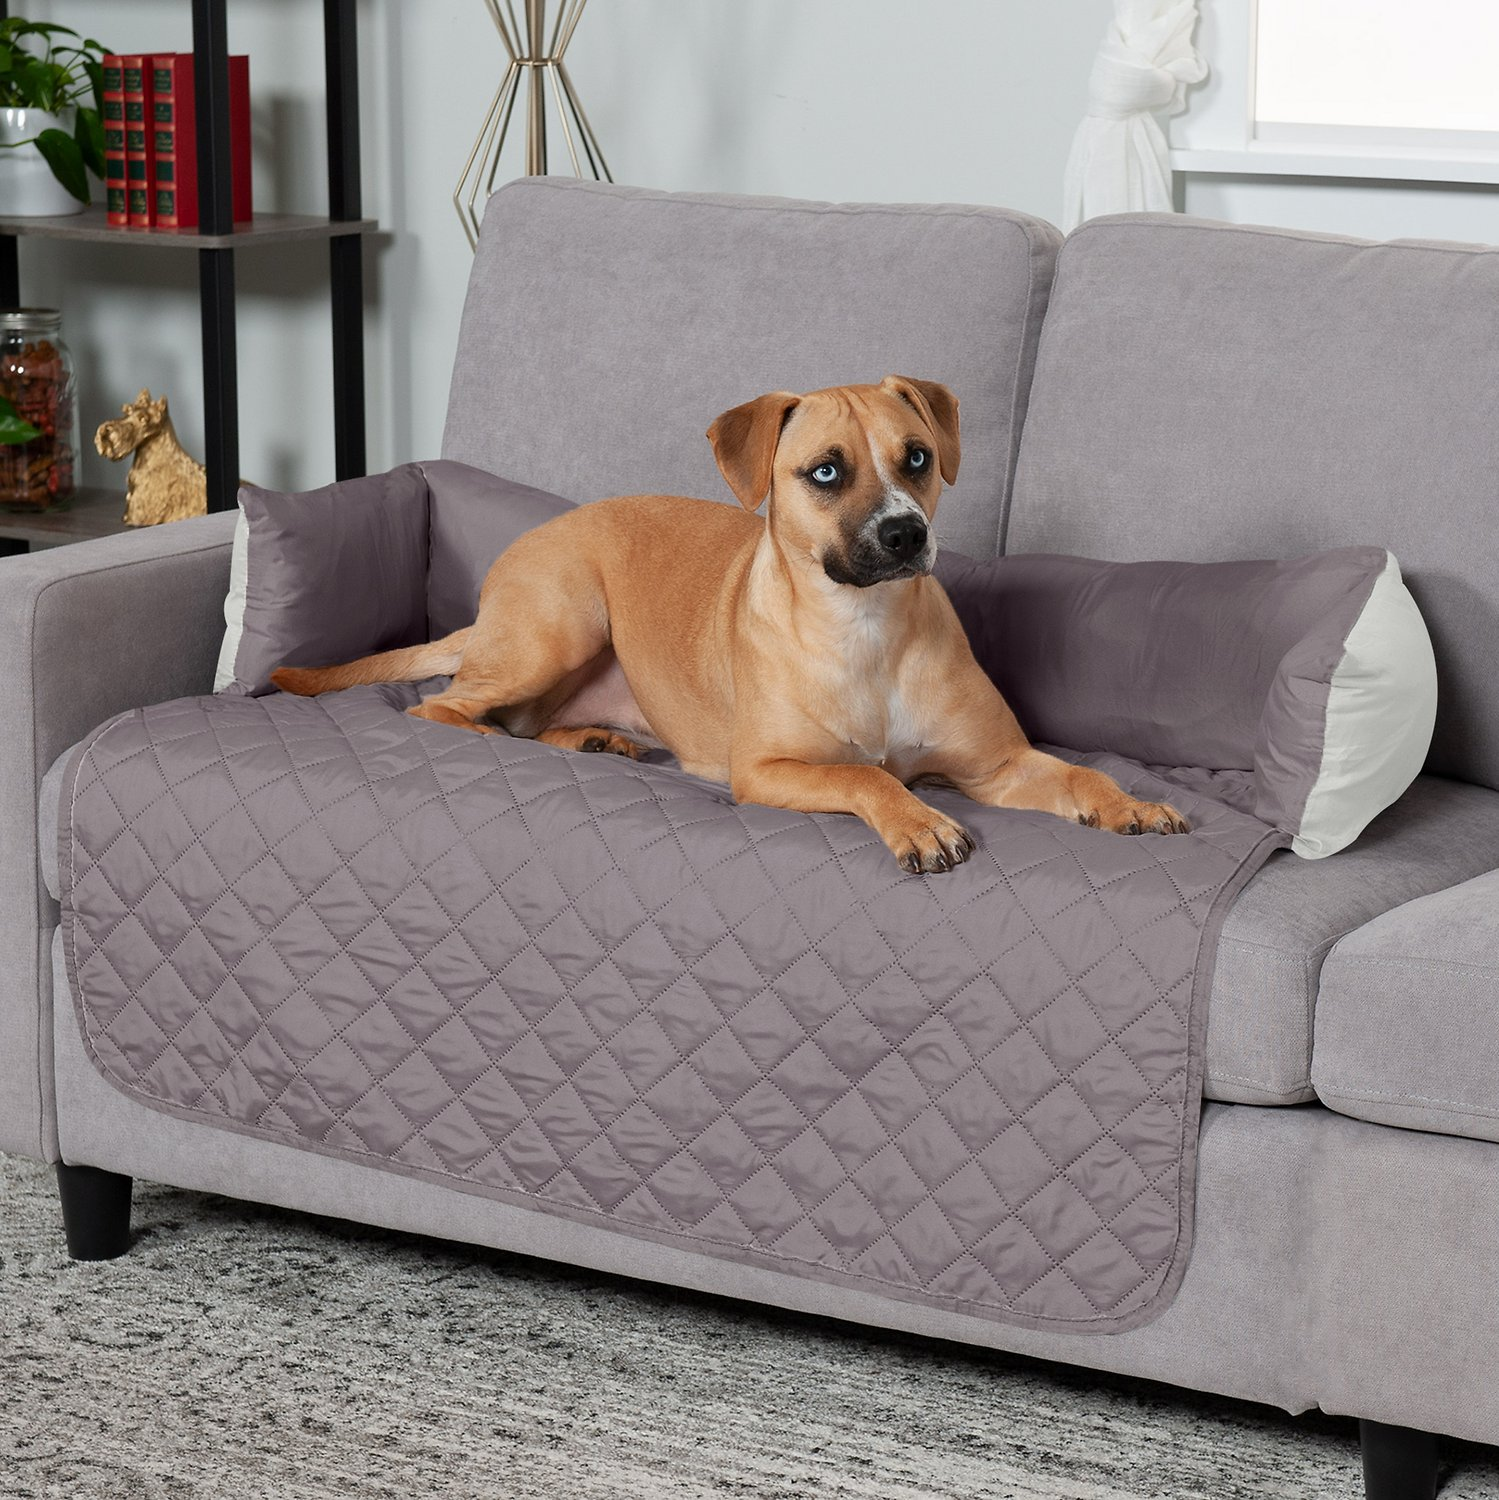 dog bed furniture. Roll Over Image To Zoom In Dog Bed Furniture